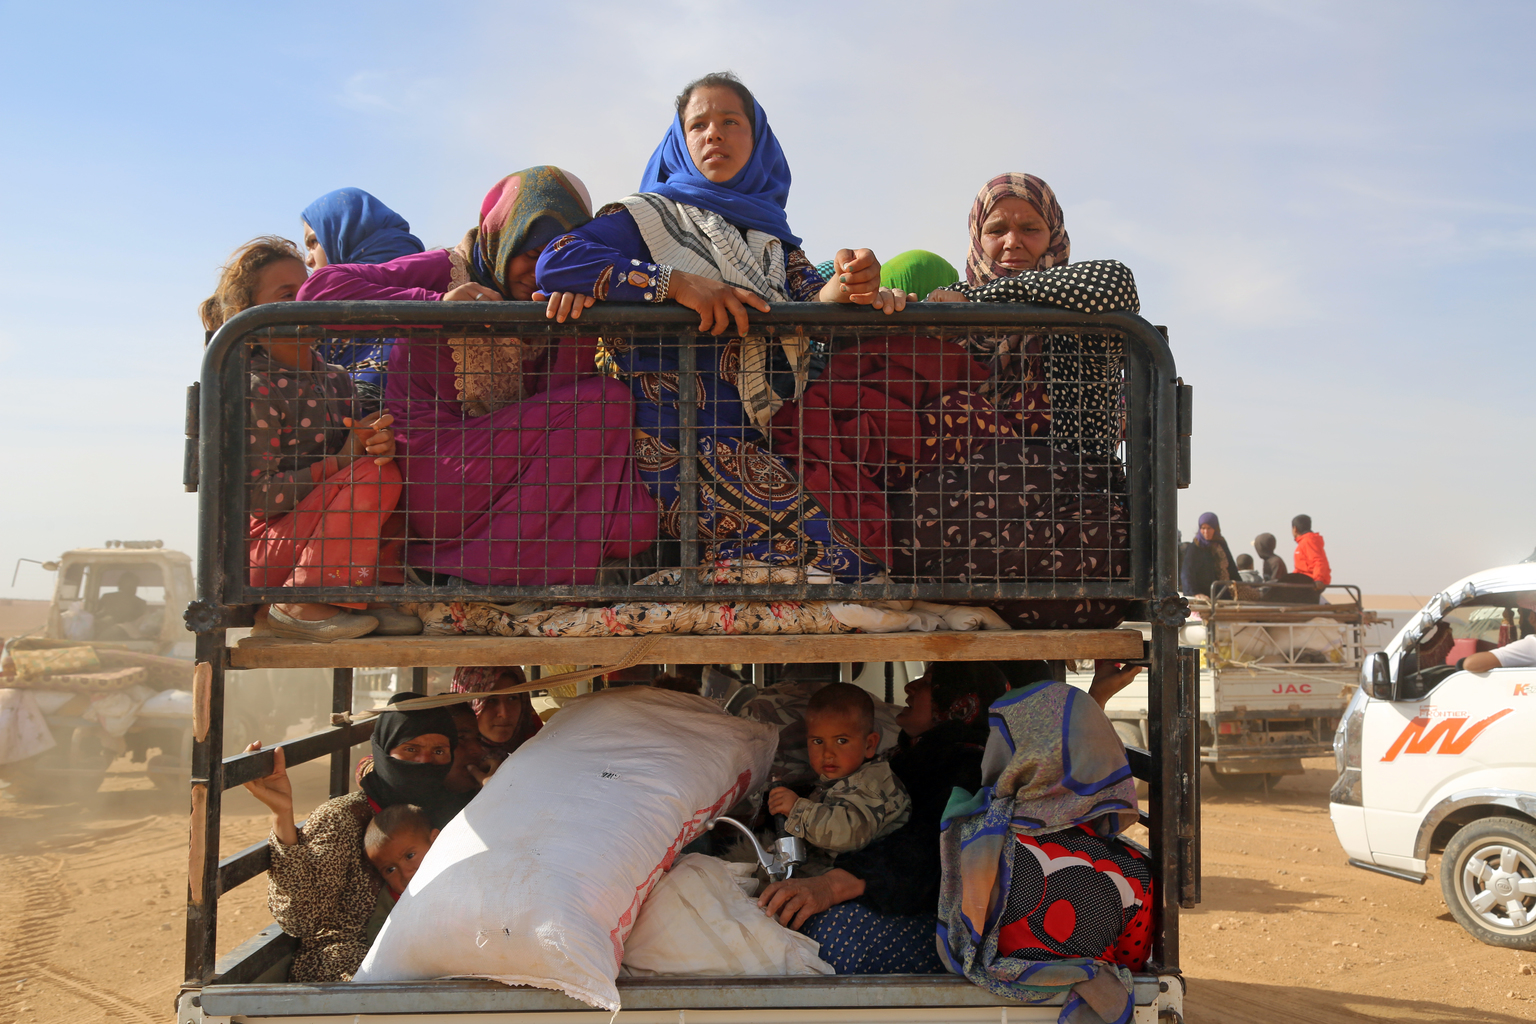 Displaced children and adults are seen in a vehicle after fleeing from ISIL- controlled areas in rural Raqqa in Syria. Photo Credit: UNICEF